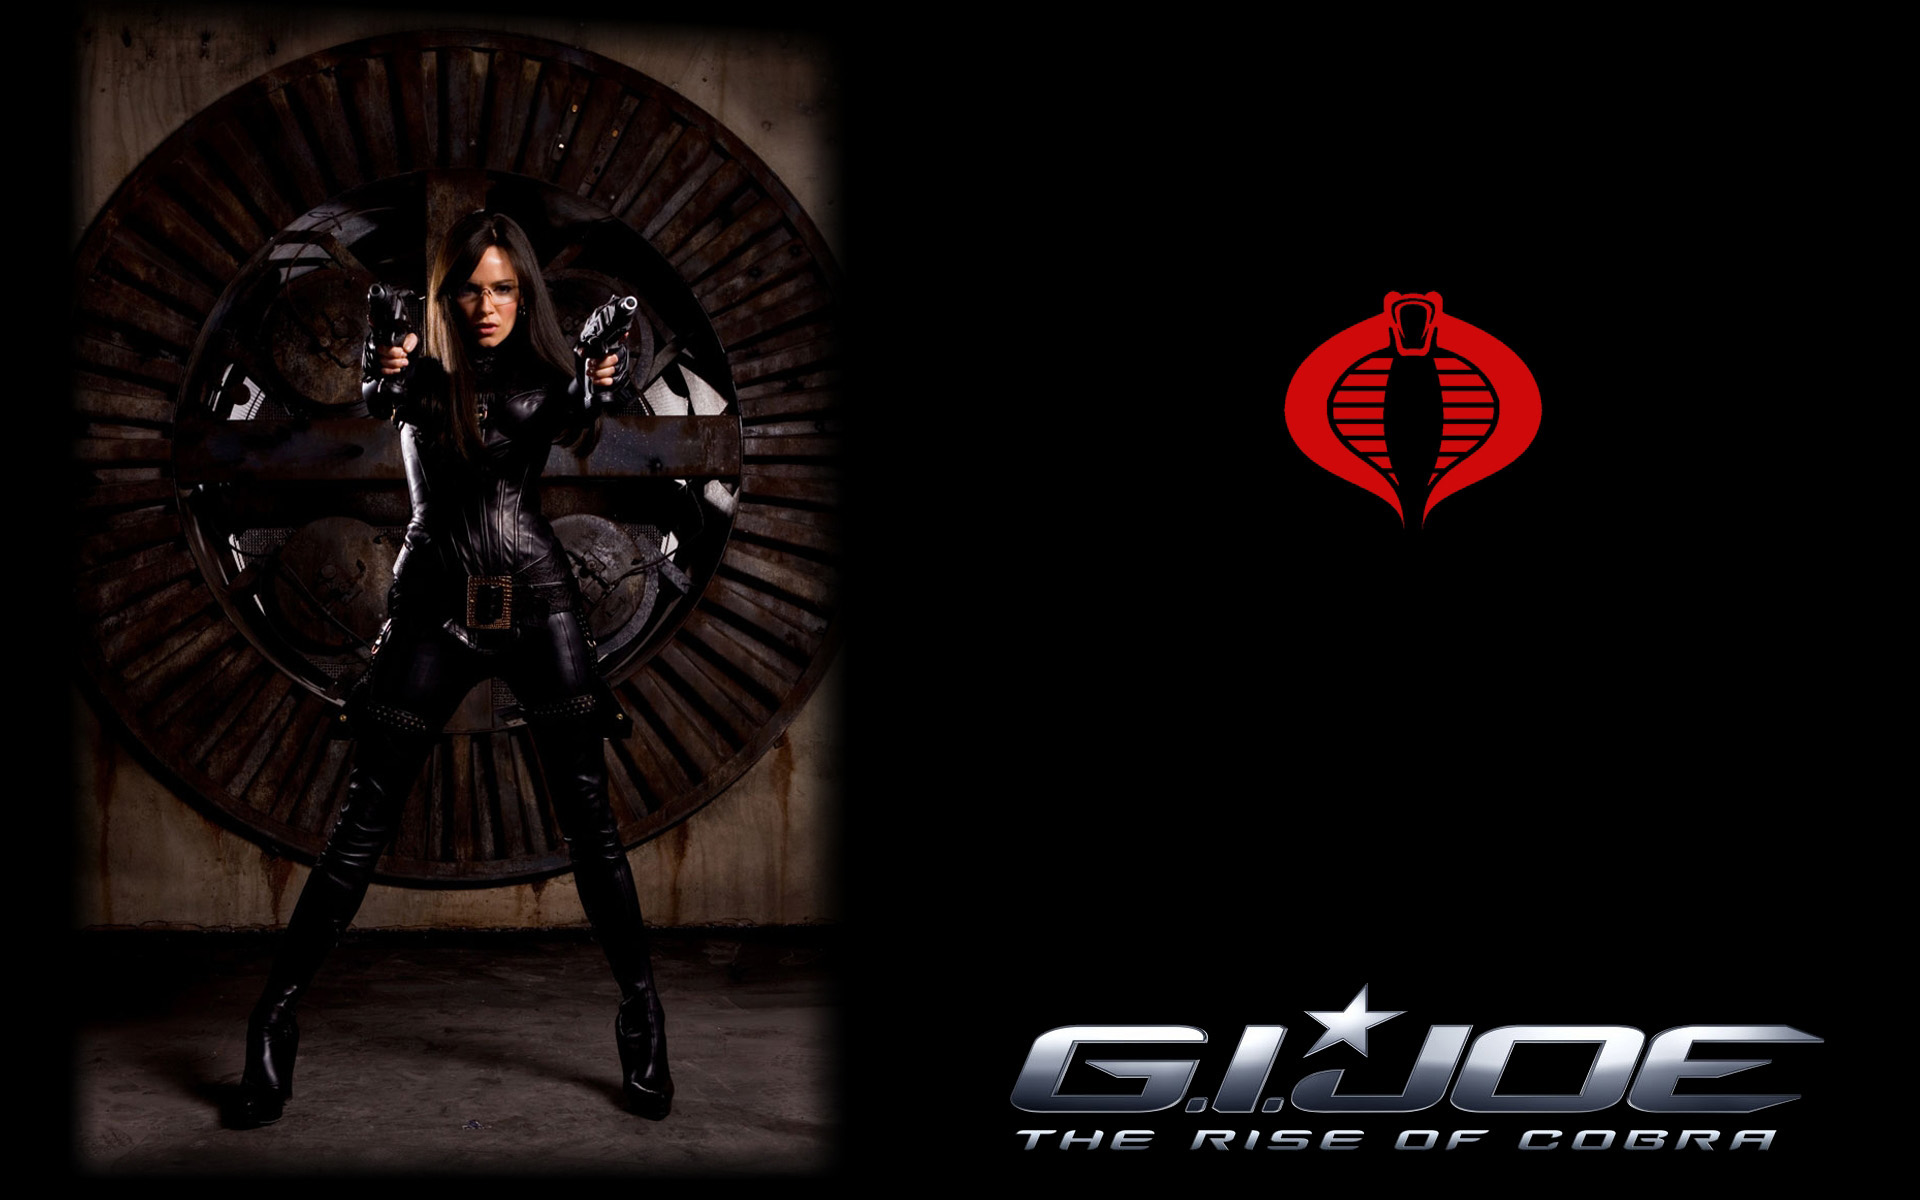 Gi Joe The Rise Of Cobra Wallpapers Gallery 5 1920 X